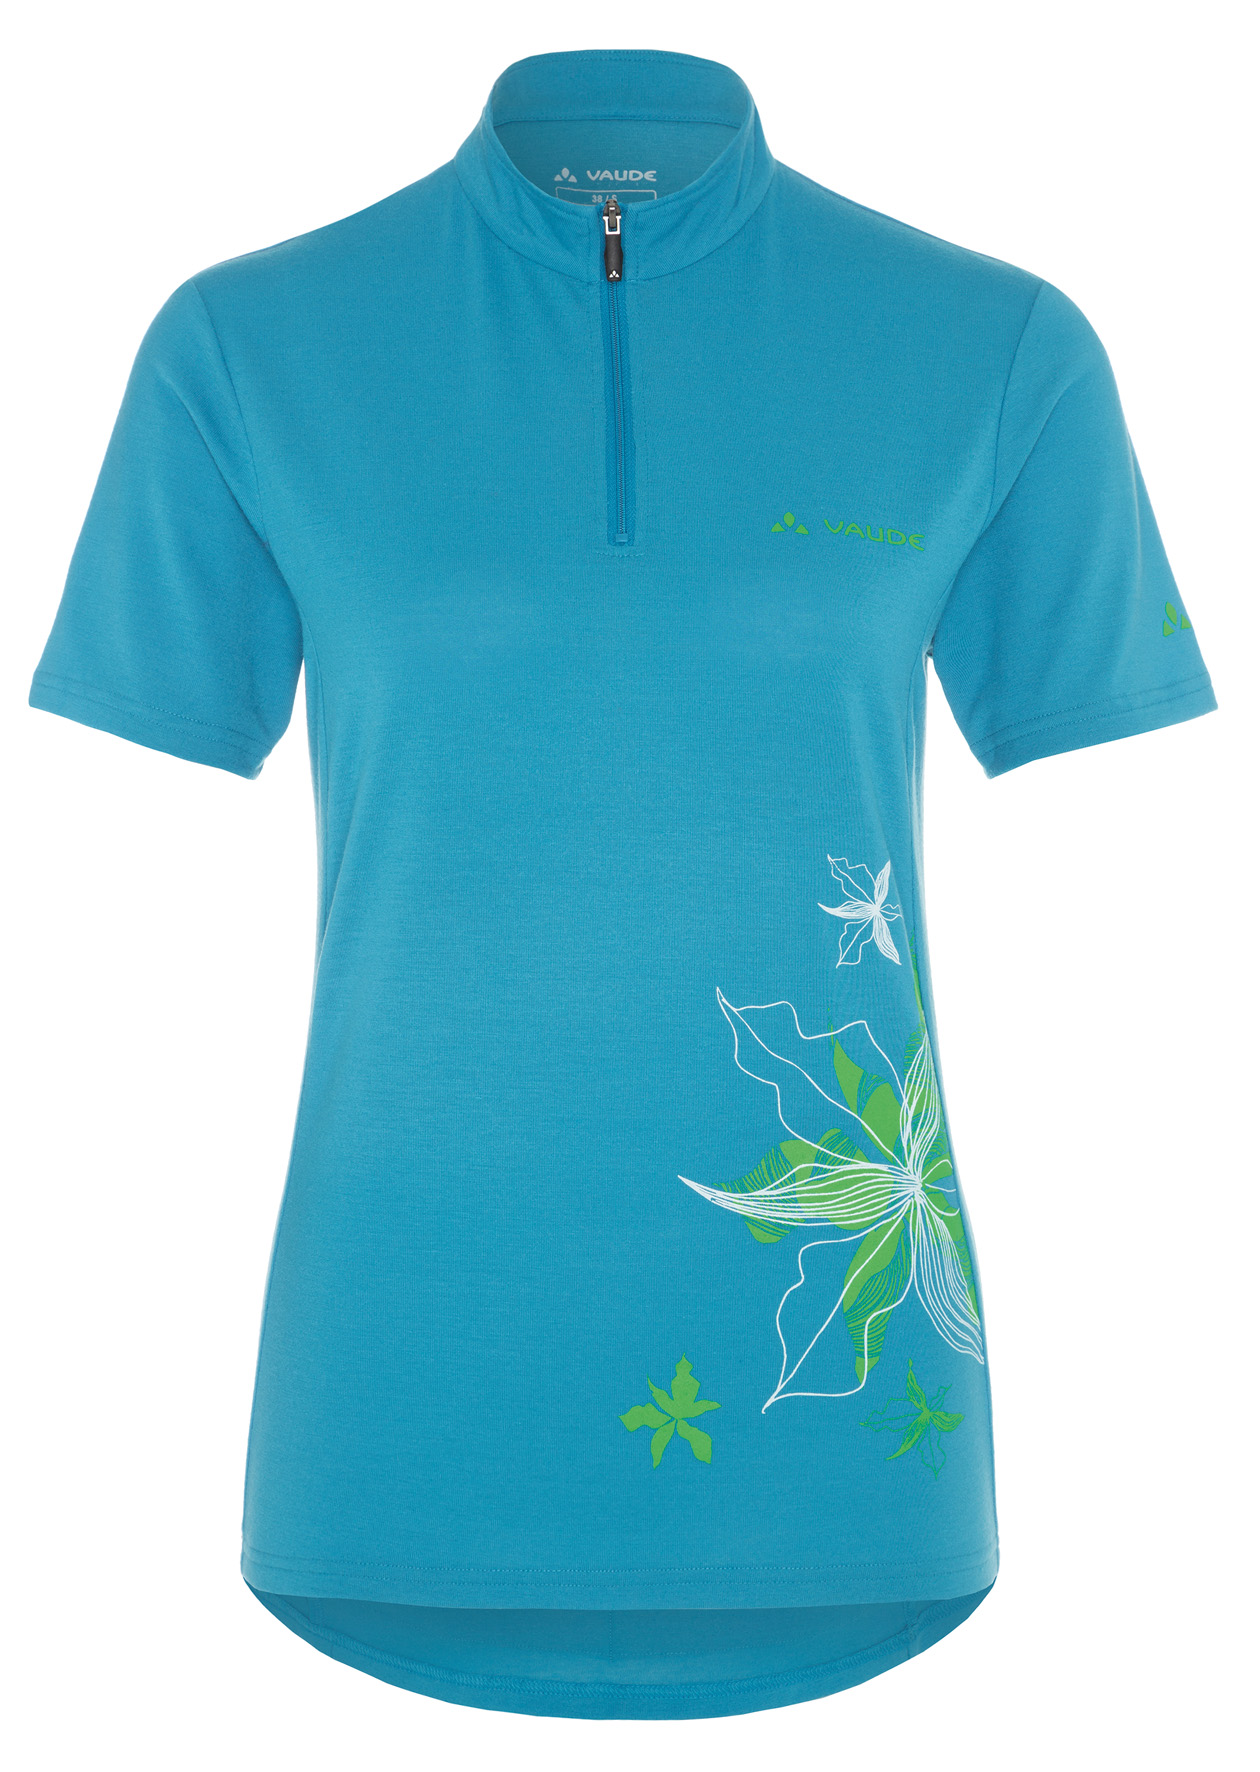 Women´s Sentiero Shirt teal blue Größe 46 - schneider-sports